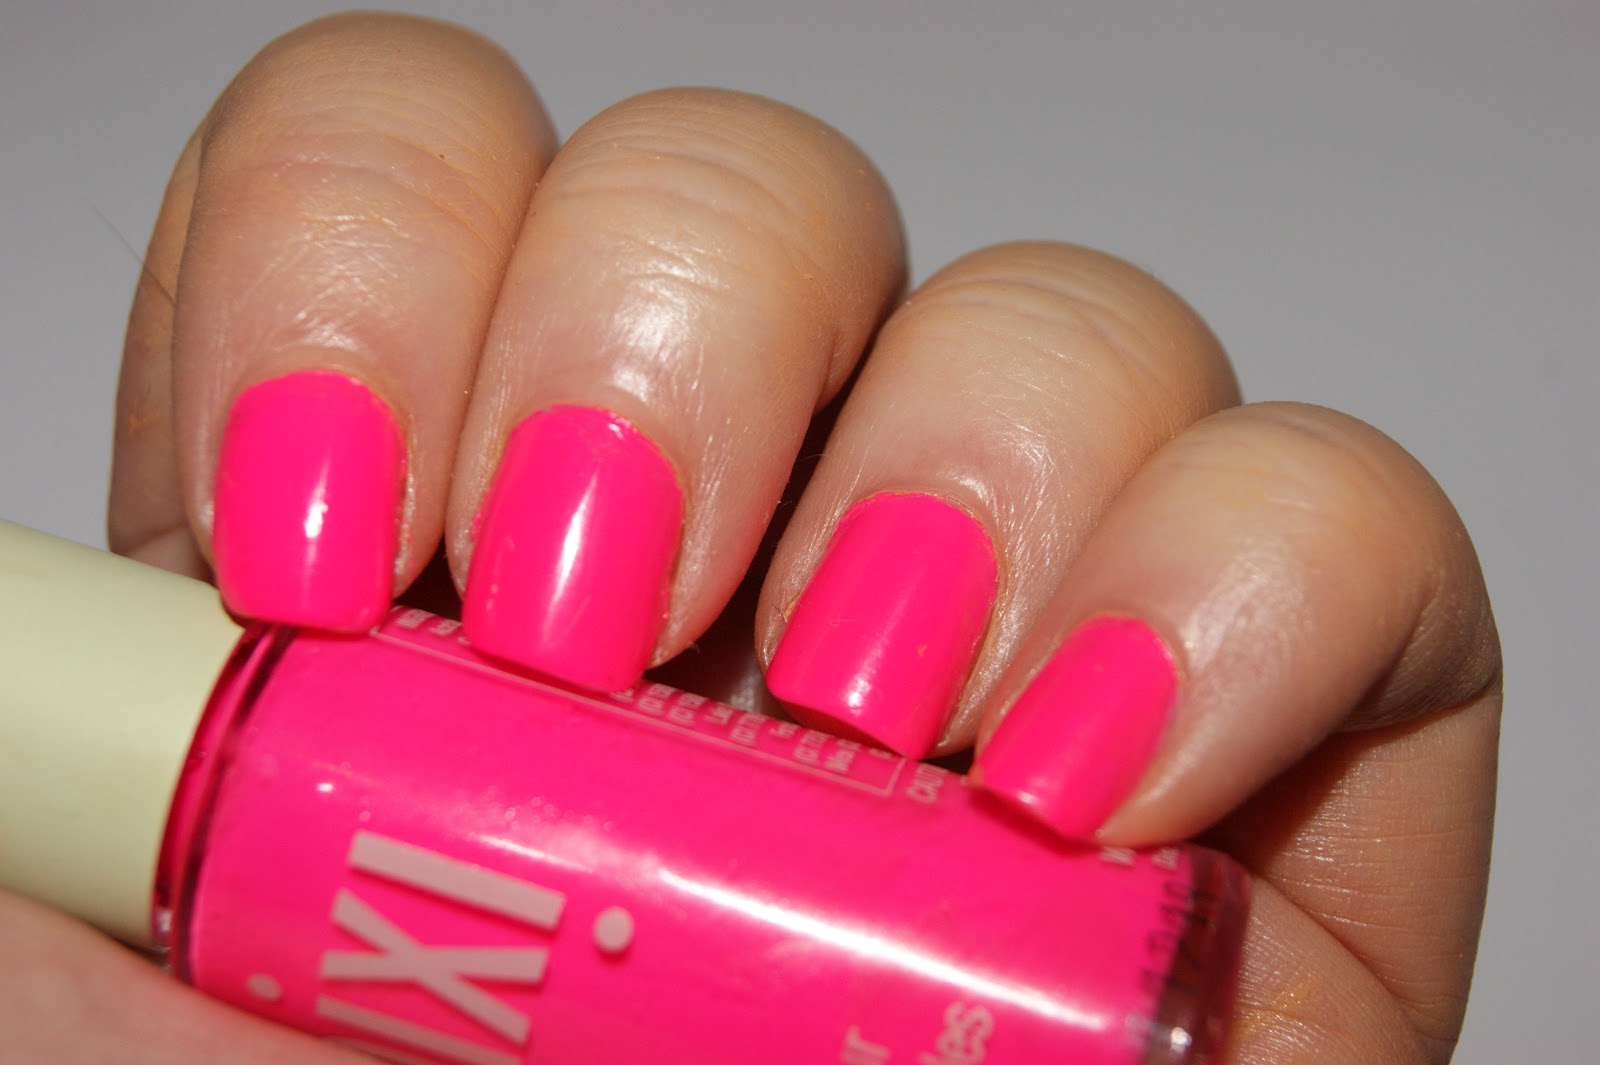 Pixi Nail Colour in 03 Summer Pink - Review | The Sunday Girl